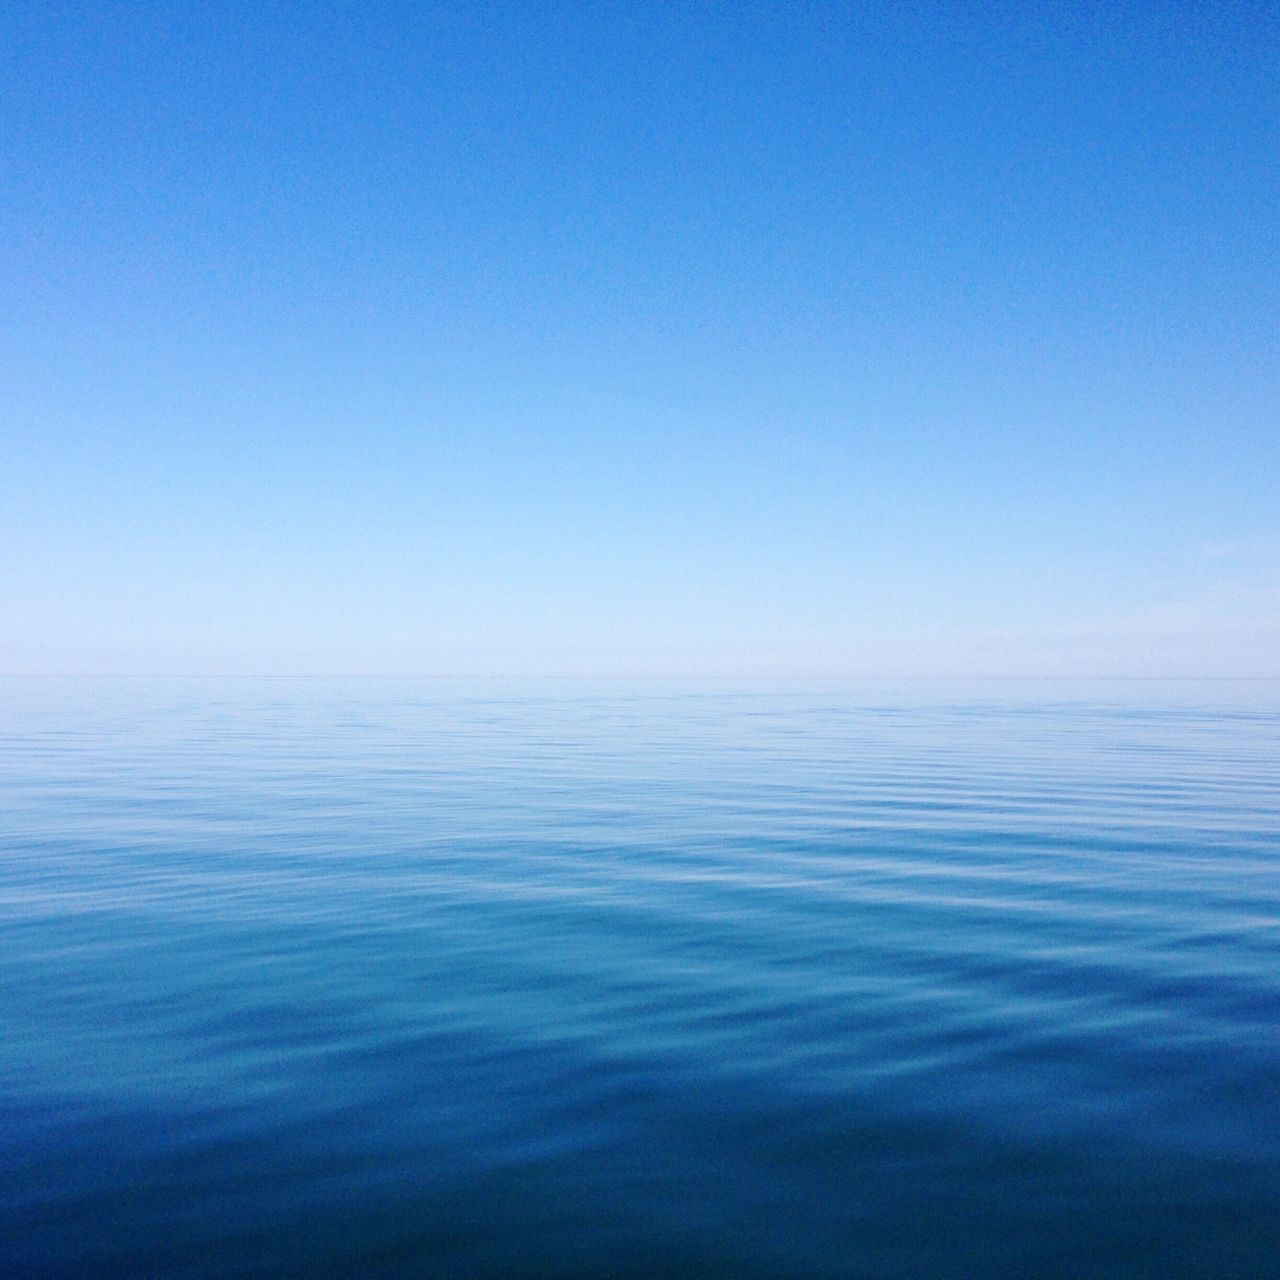 Scenics Blue Tranquility Sea Water Tranquil Scene No People Clear Sky Horizon Over Water Sky Blue Sky Blue Water Ocean Lake Great Lakes Ontario Canada Beauty In Nature Peaceful Zen Meditation Ripples Ripples In The Water Rippled Water Waterscape